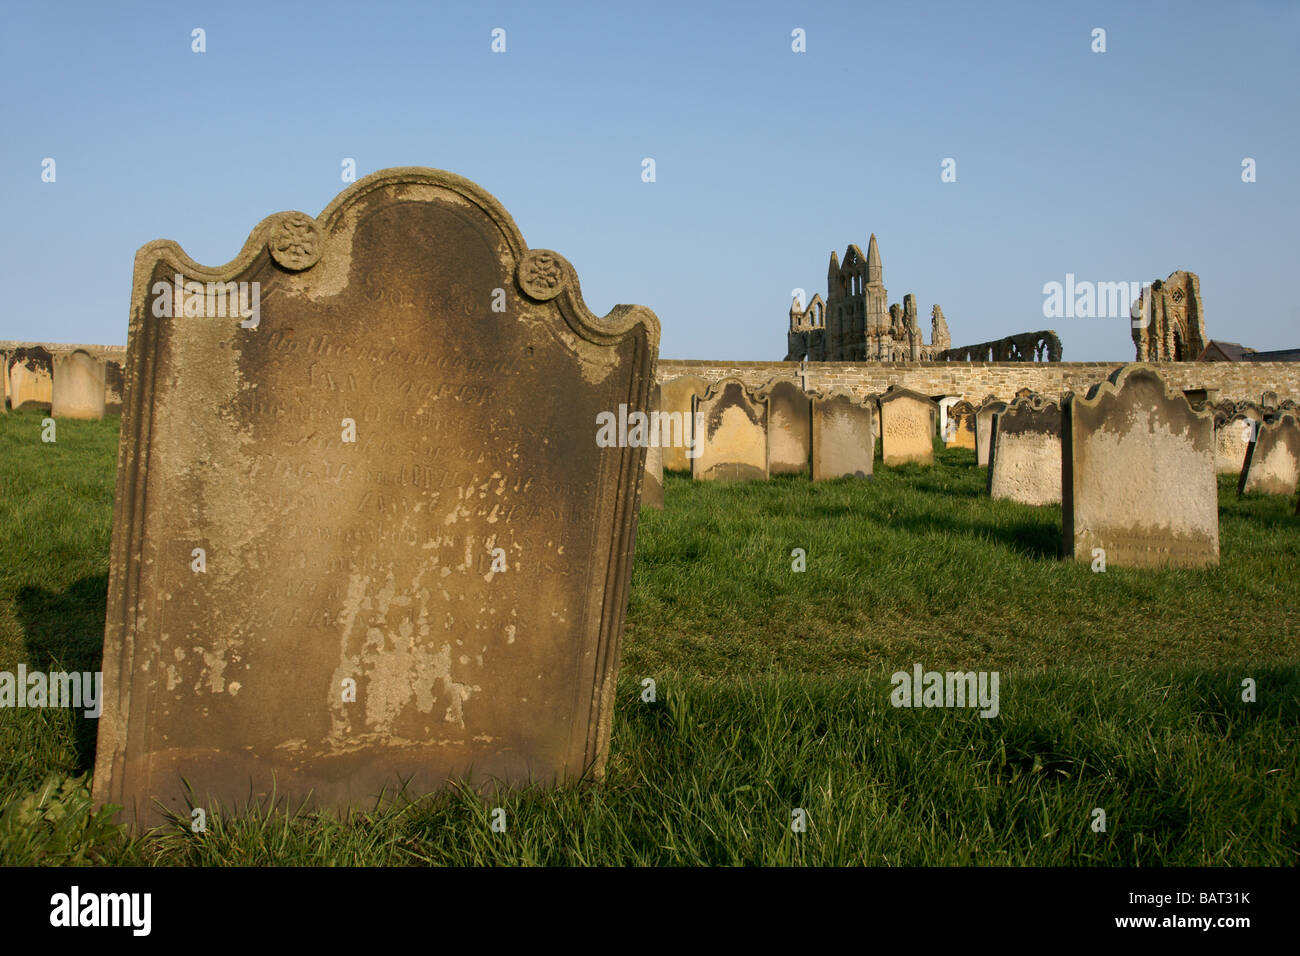 The graveyard of St Mary the Virgin Church, Whitby North Yorkshire England UK (c) Marc Jackson Photography Stock Photo